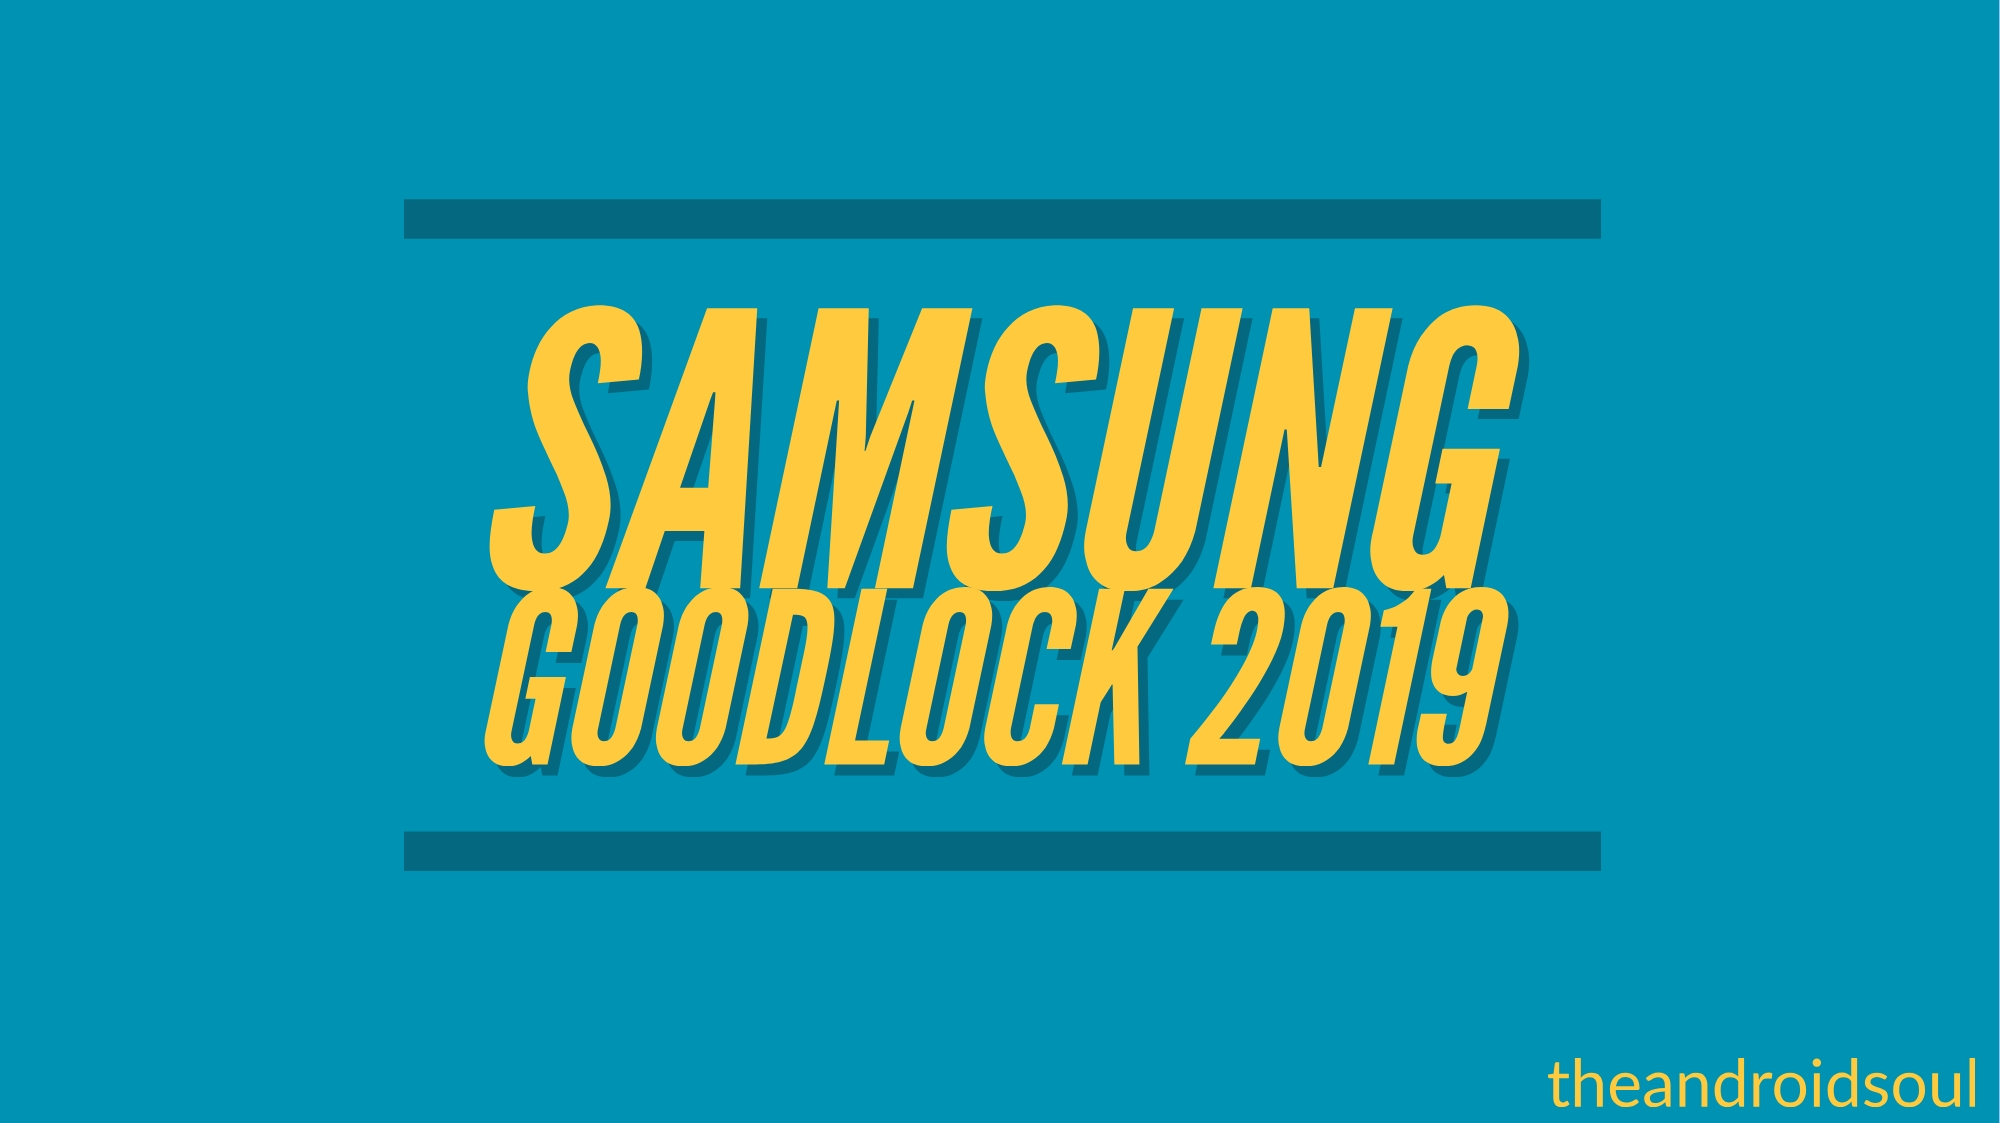 How to download Good Lock 2019 on Android 9 Pie (bypass country